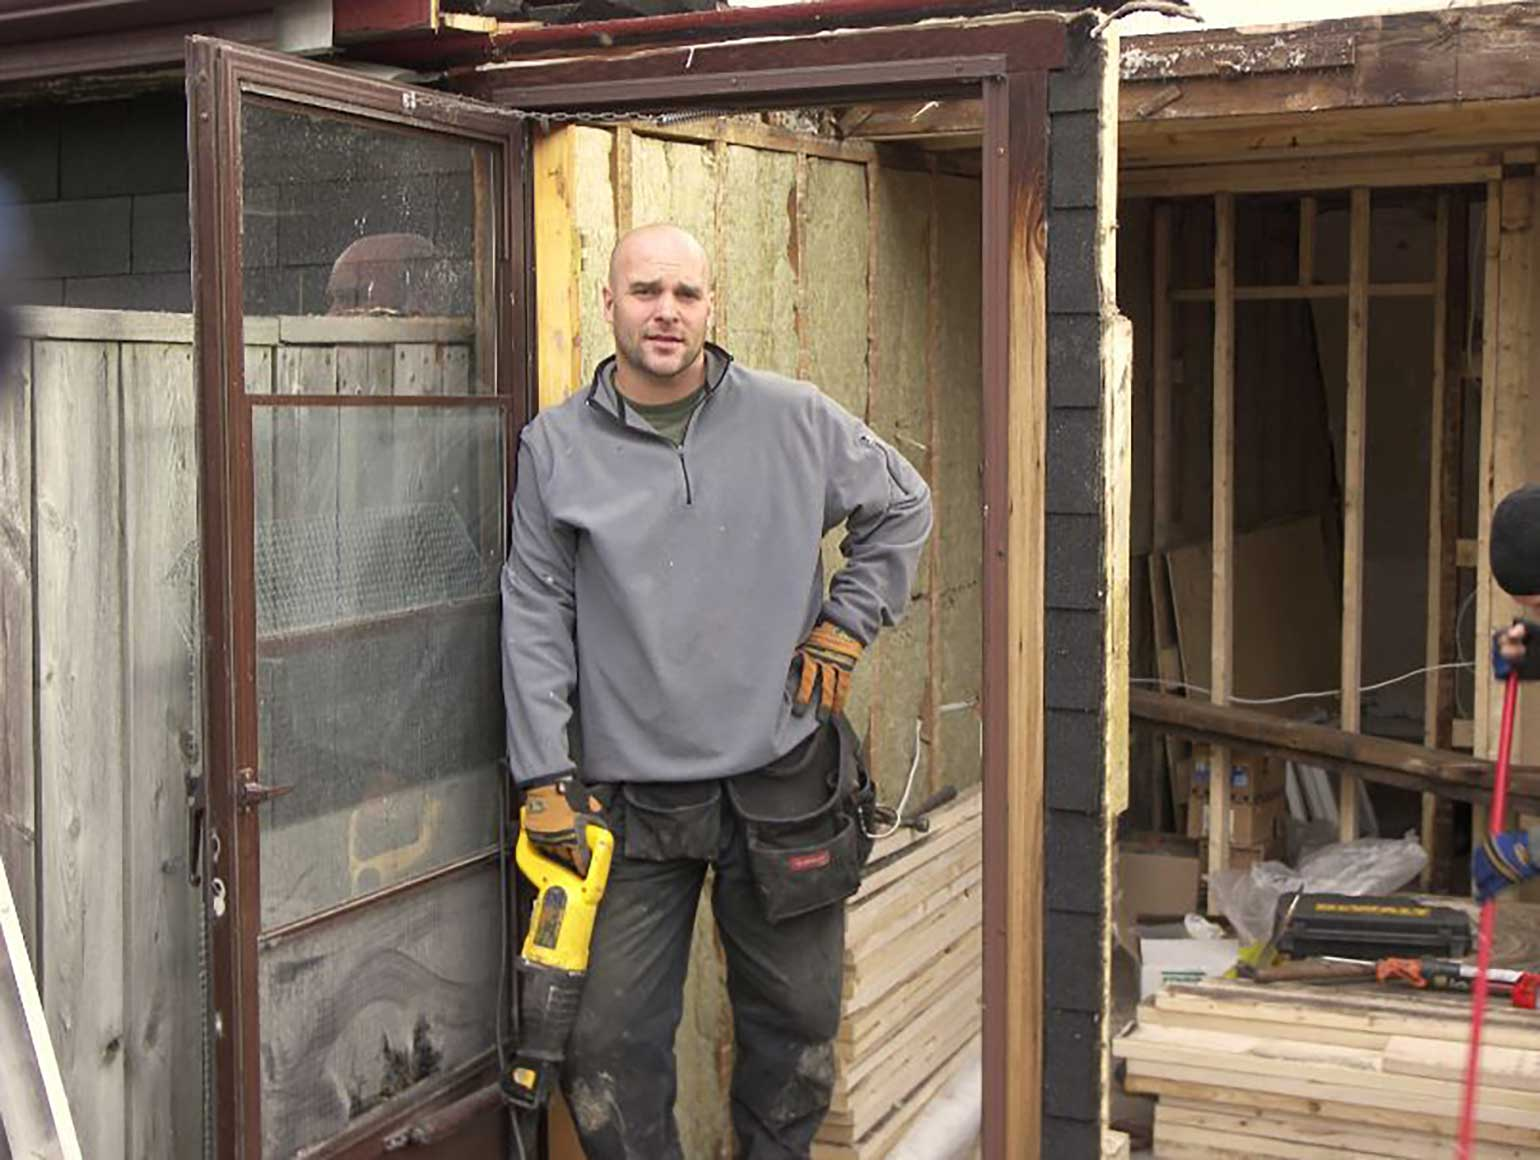 Bryan leaning in a doorway of an obviously gutted house.